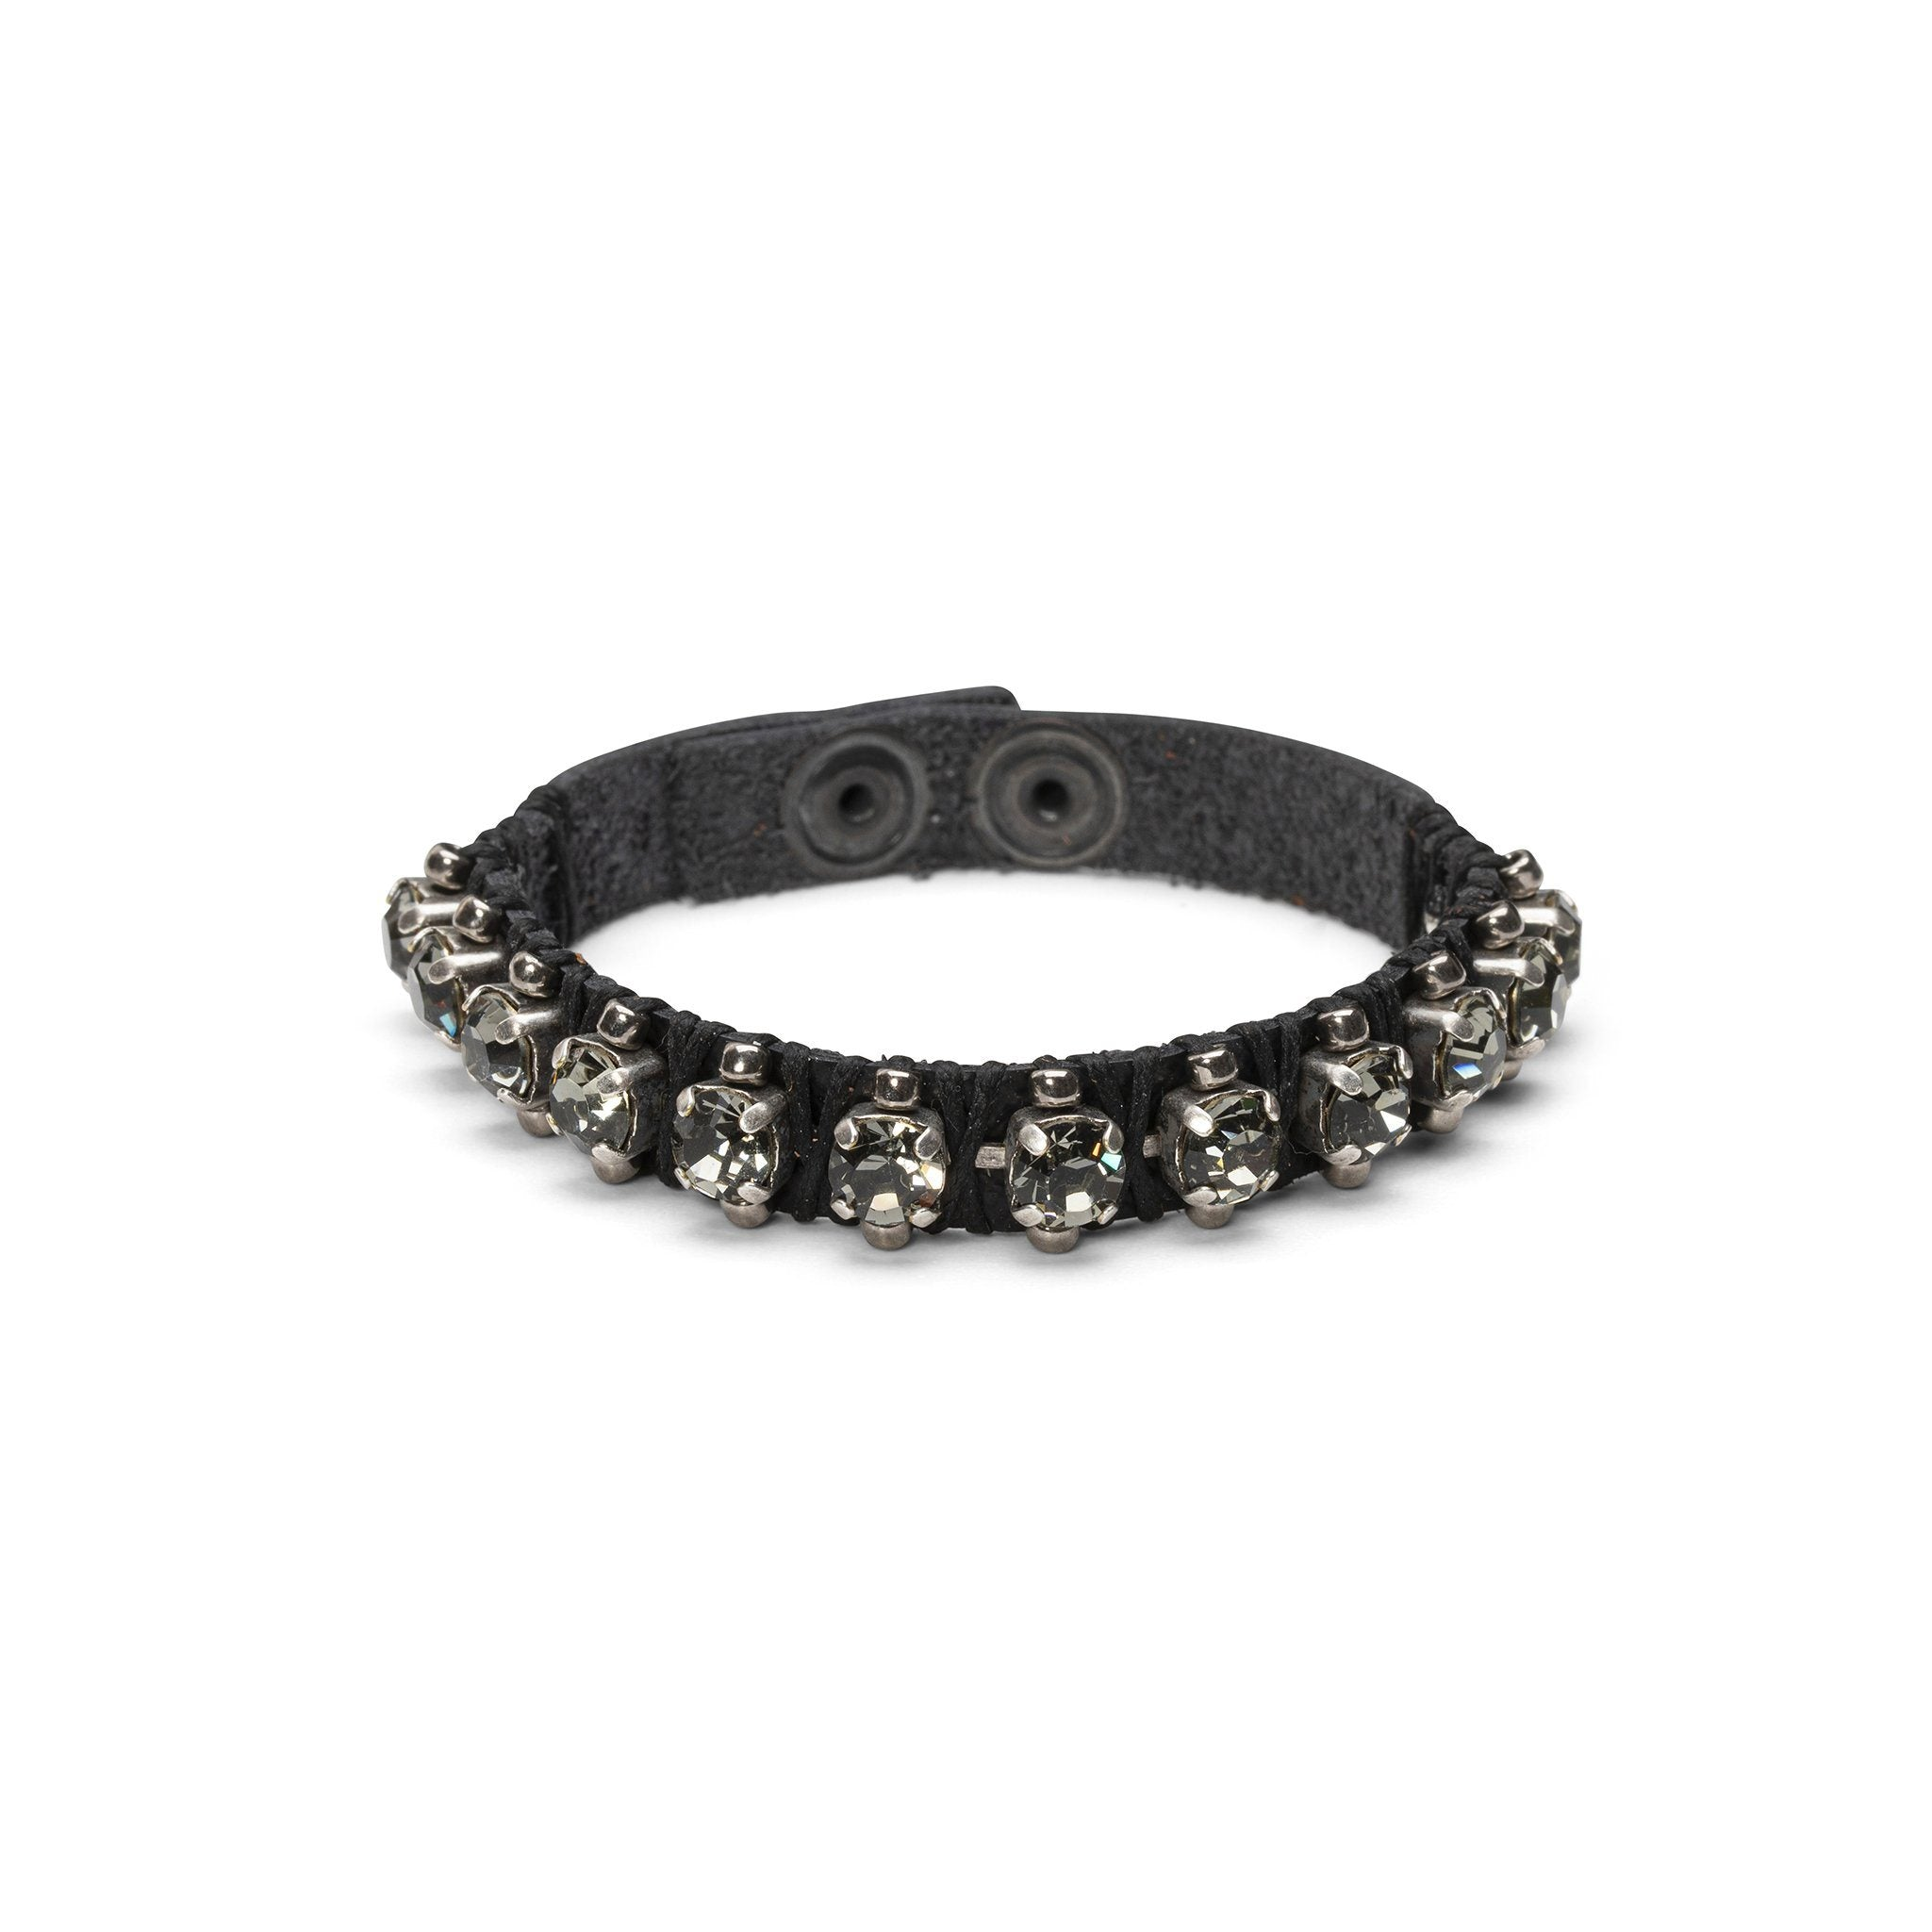 North Star Bracelet - Black Diamond